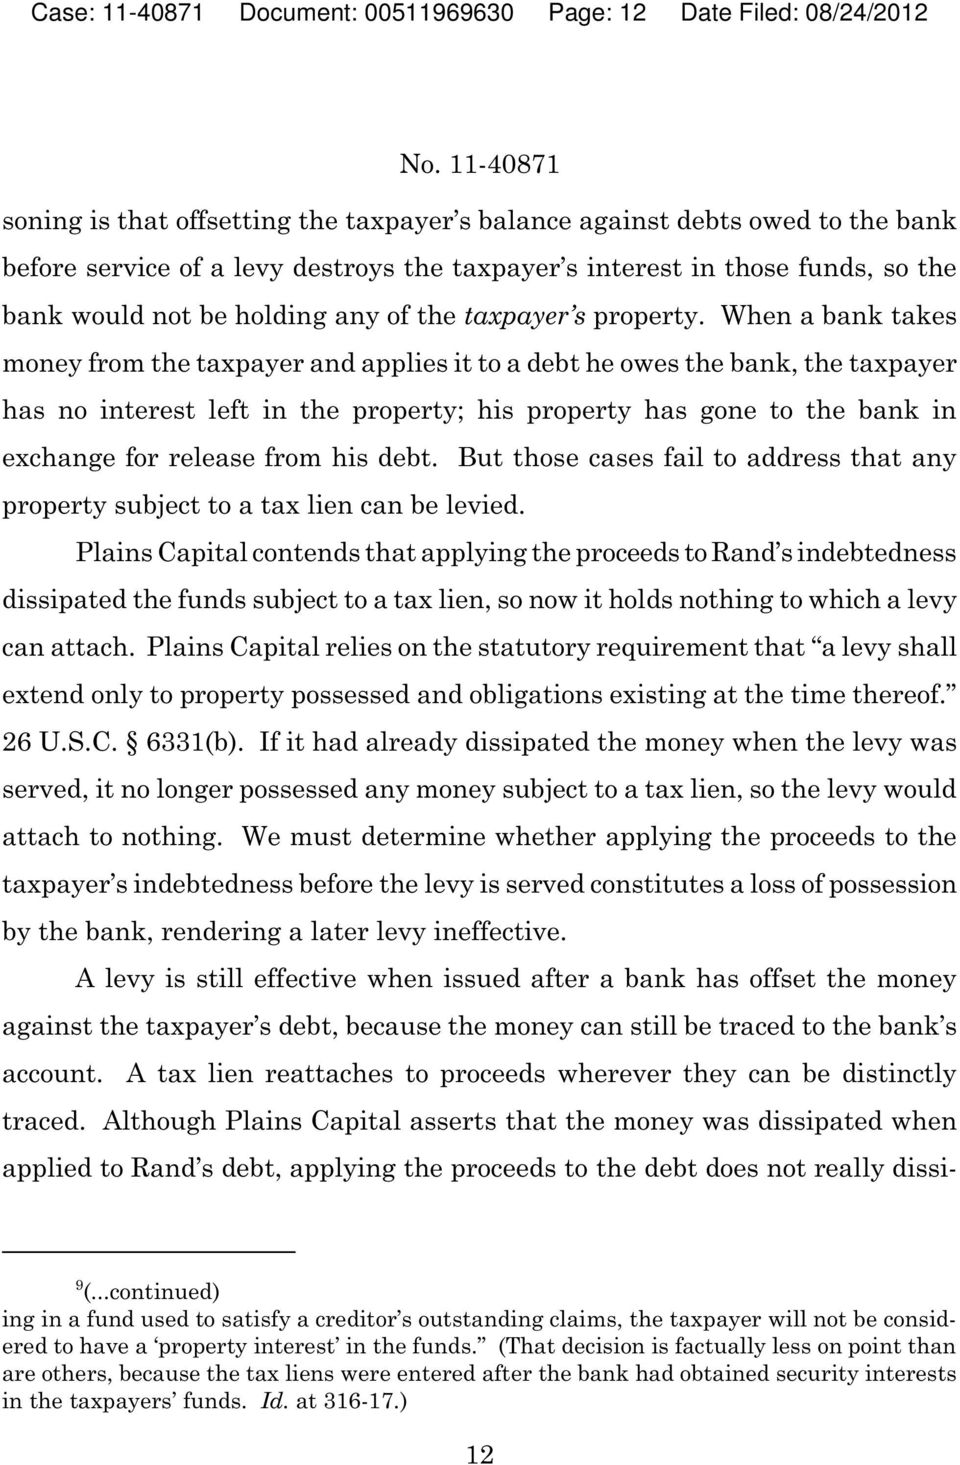 When a bank takes money from the taxpayer and applies it to a debt he owes the bank, the taxpayer has no interest left in the property; his property has gone to the bank in exchange for release from